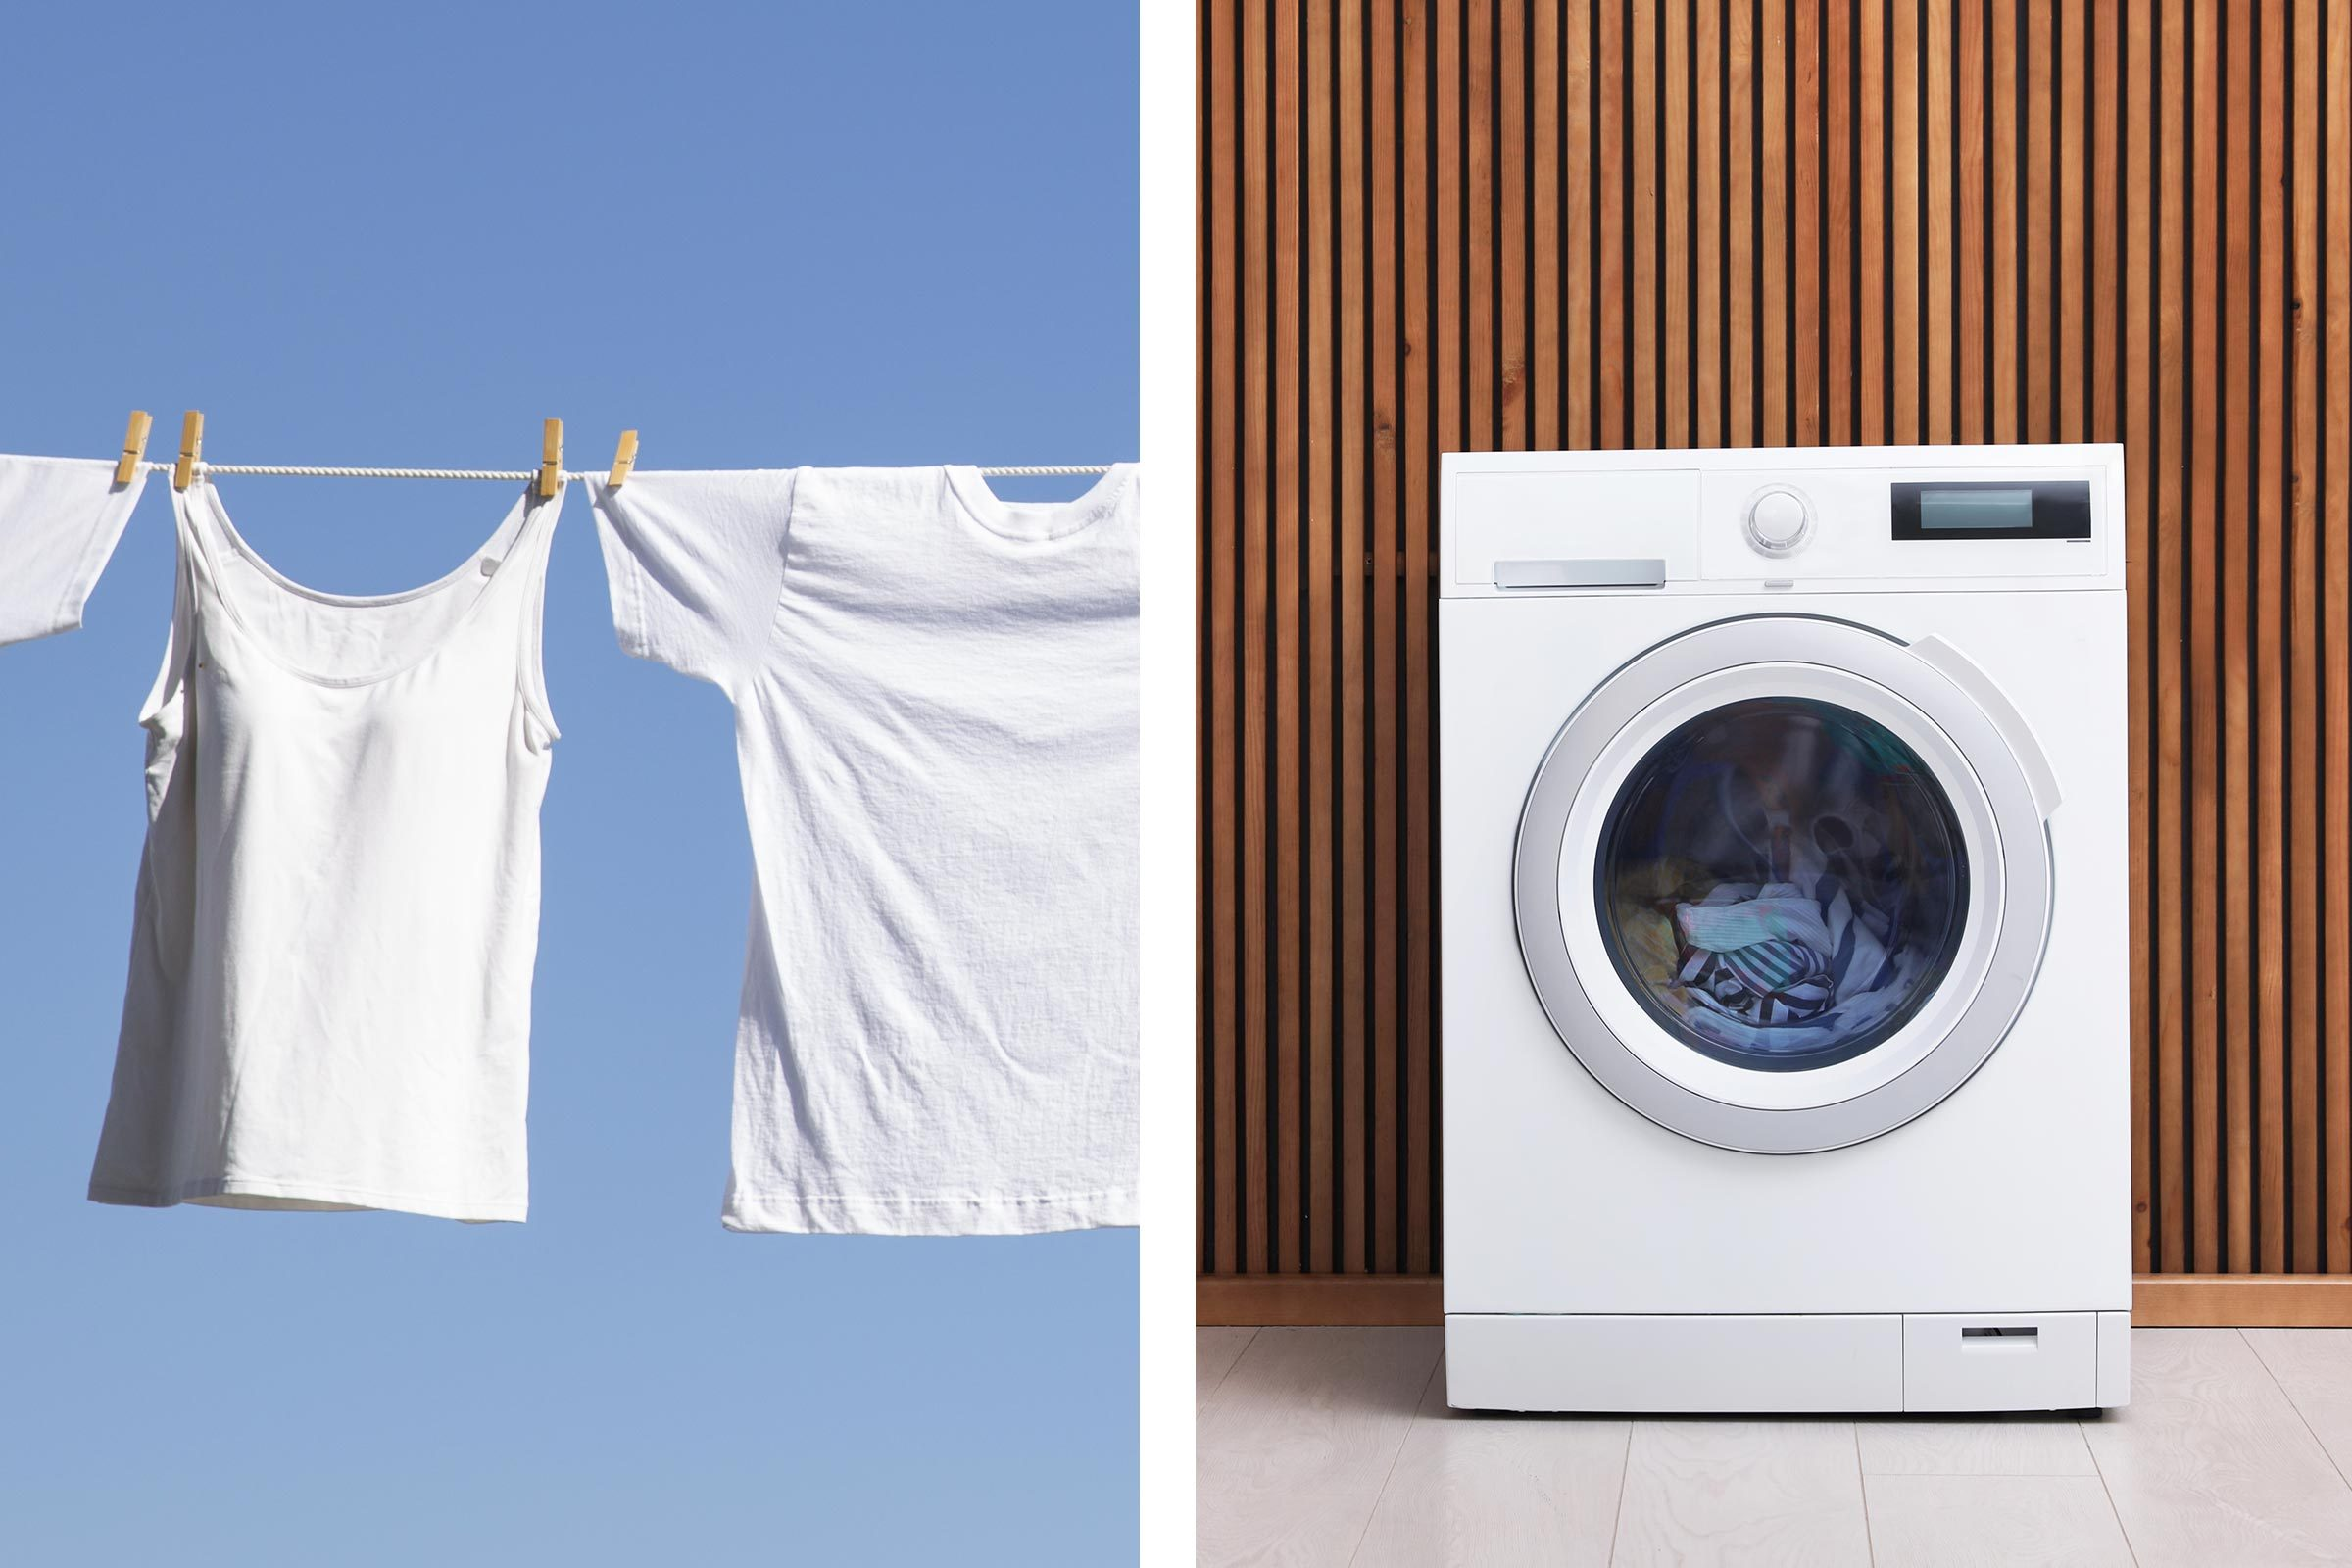 air dry or machine dry your clothes